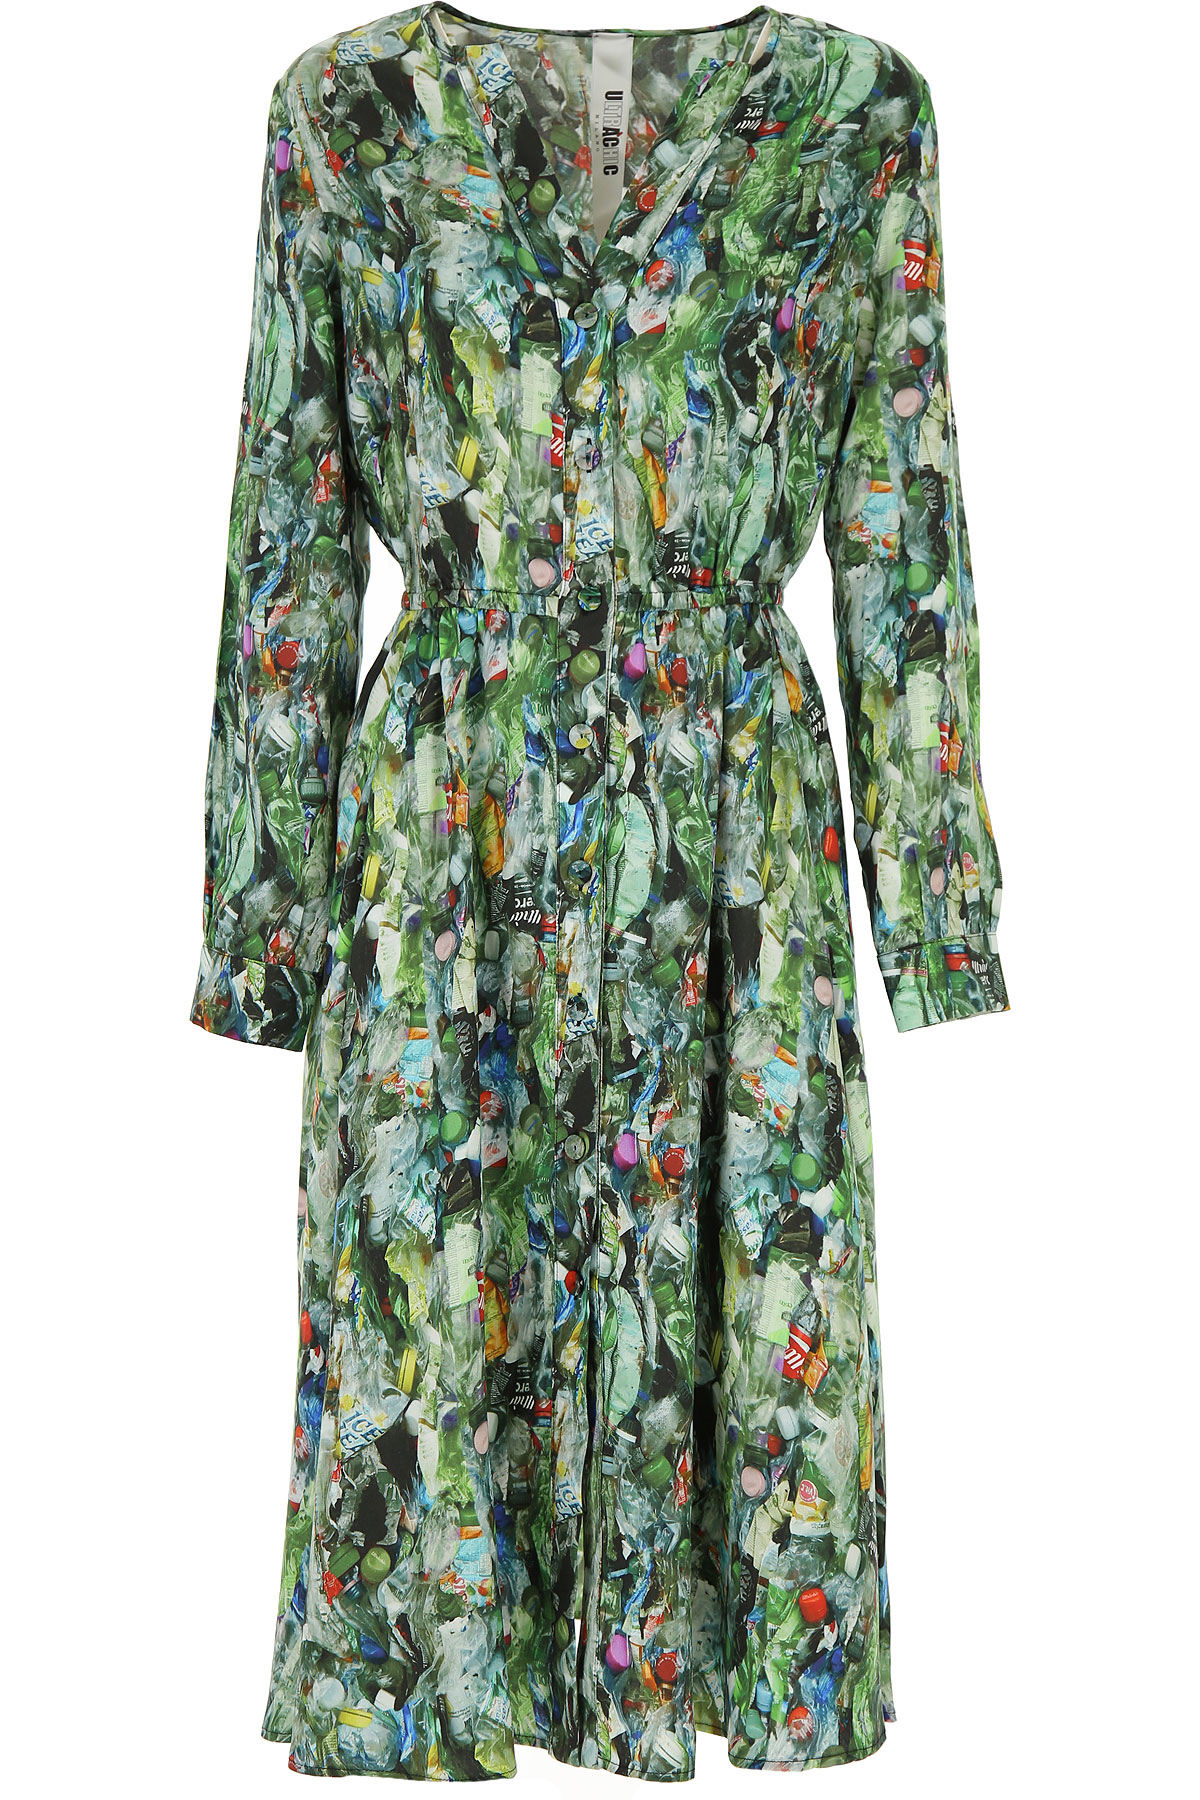 Ultrachic Dress for Women, Evening Cocktail Party On Sale, Green, viscosa, 2019, 4 6 8